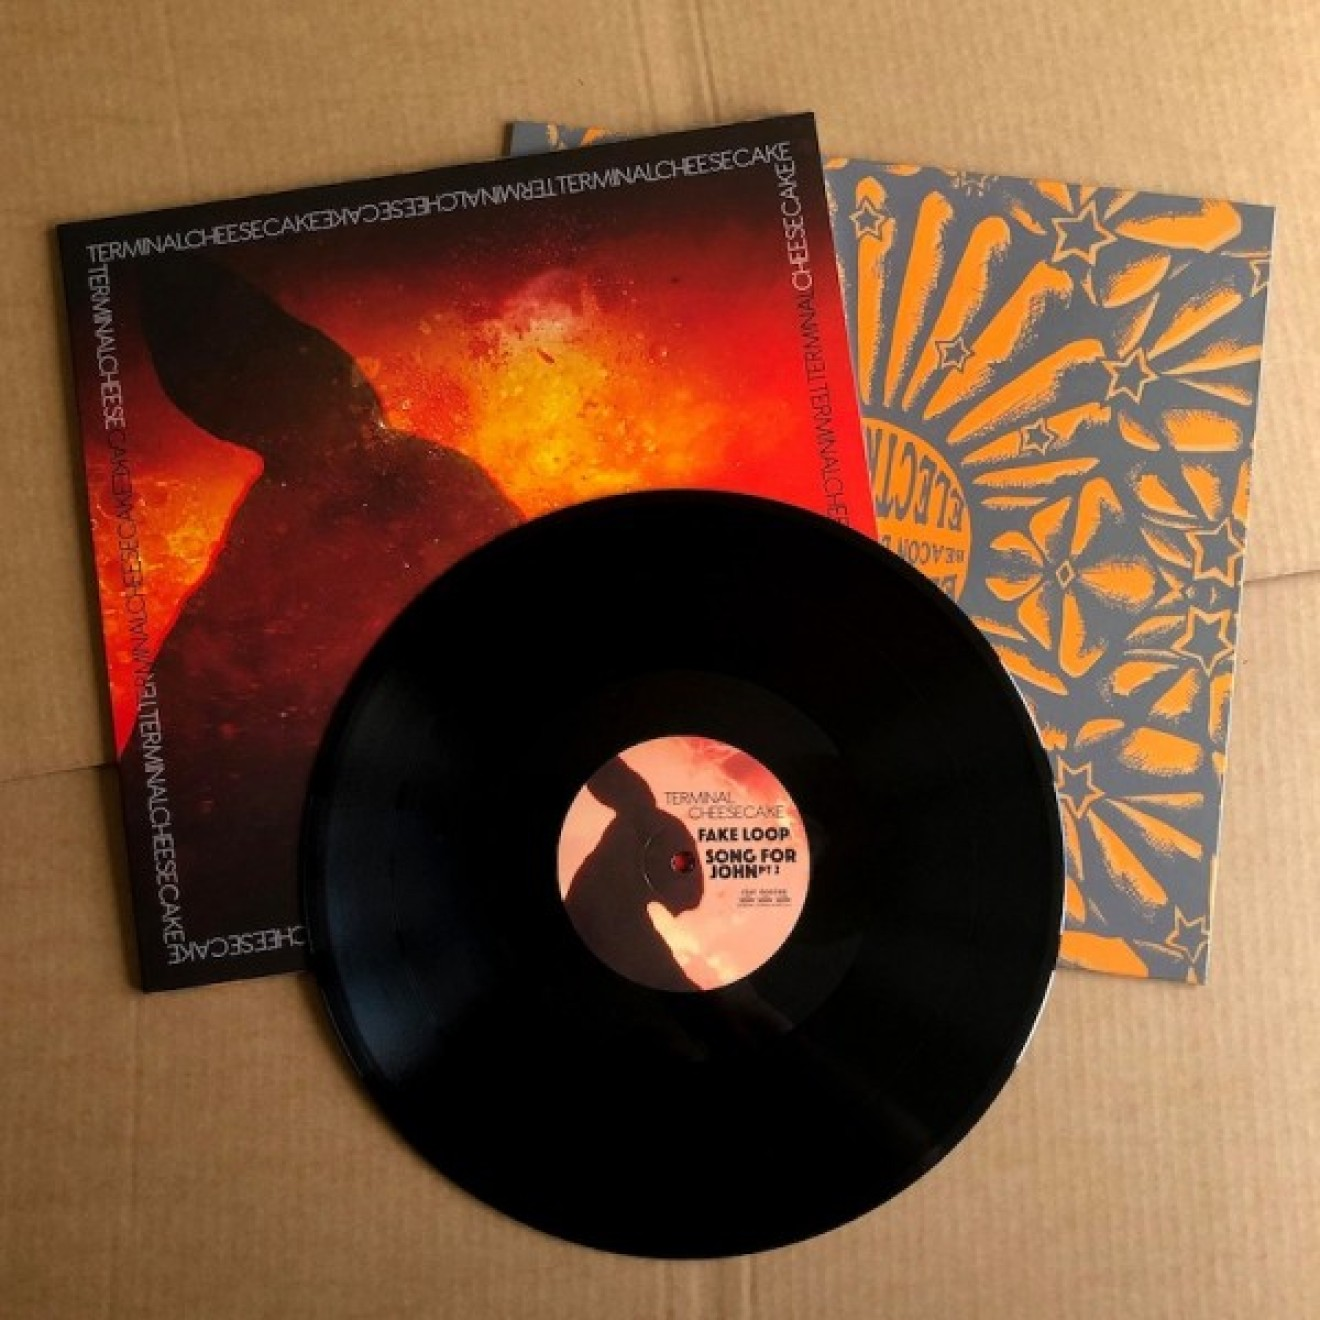 ELECTRIC MOON / TERMINAL CHEESECAKE - in search of highs vol. 3 split LP schwarz